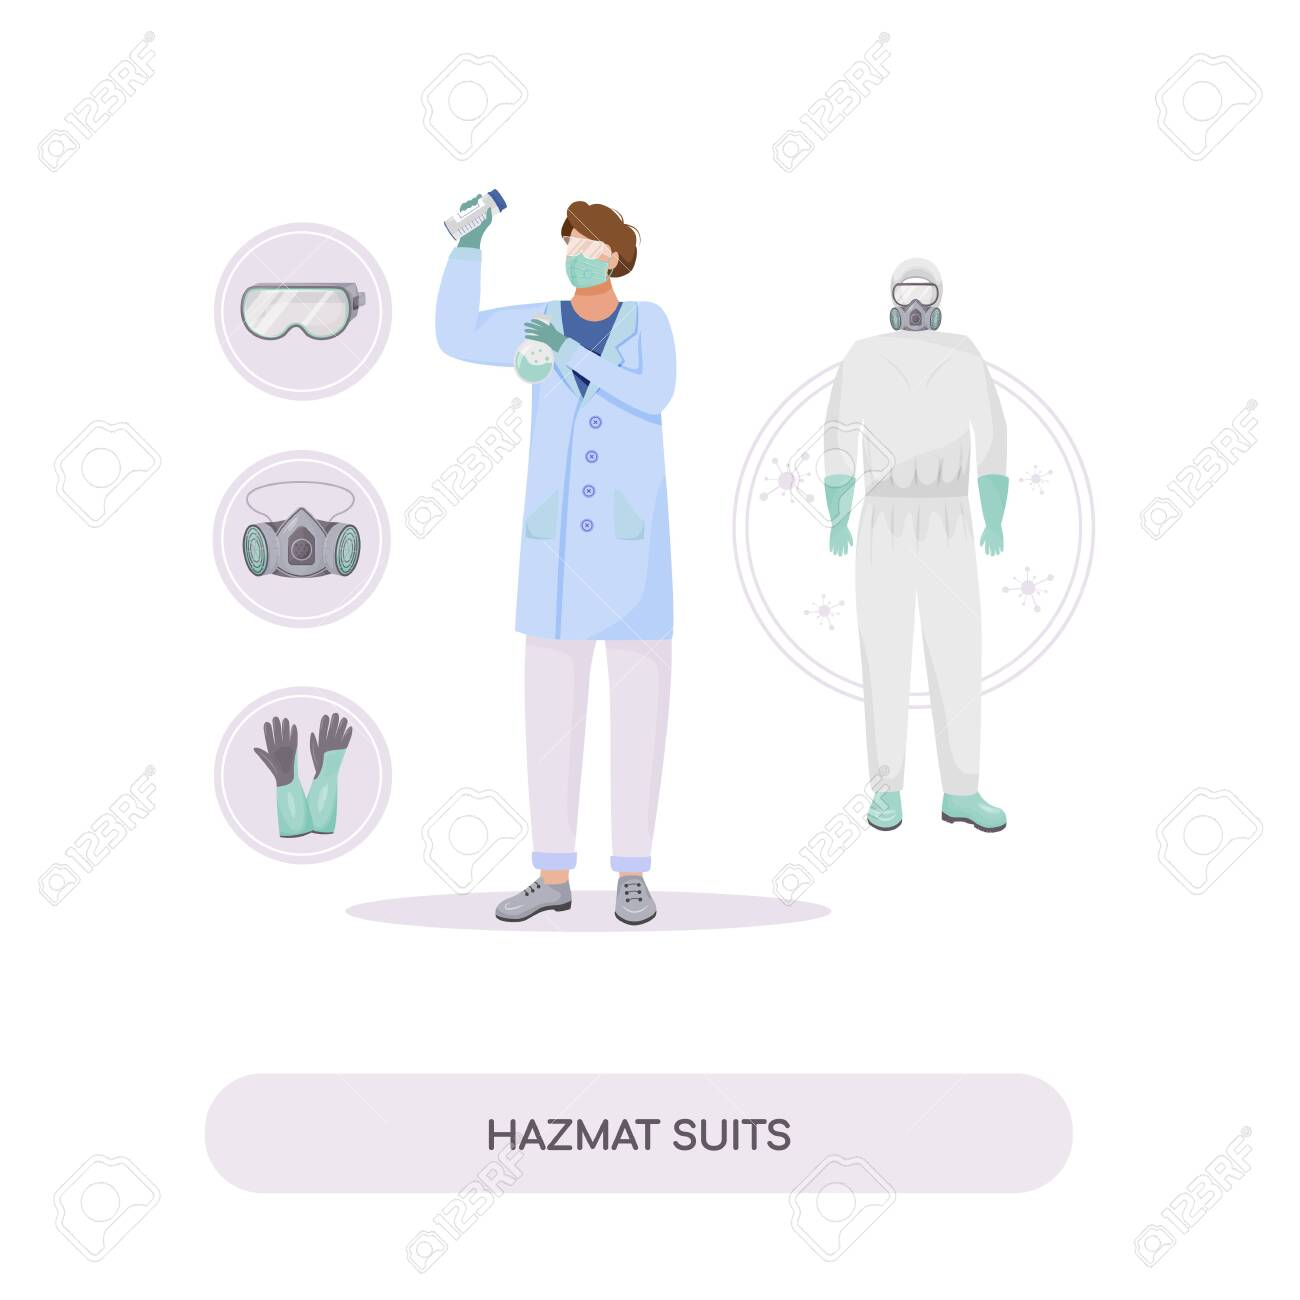 Hazmat suits flat concept vector illustration. Radiation protection, workwear. Chemist in gloves and protective goggles 2D cartoon character for web design. Protective clothing creative idea - 145521231